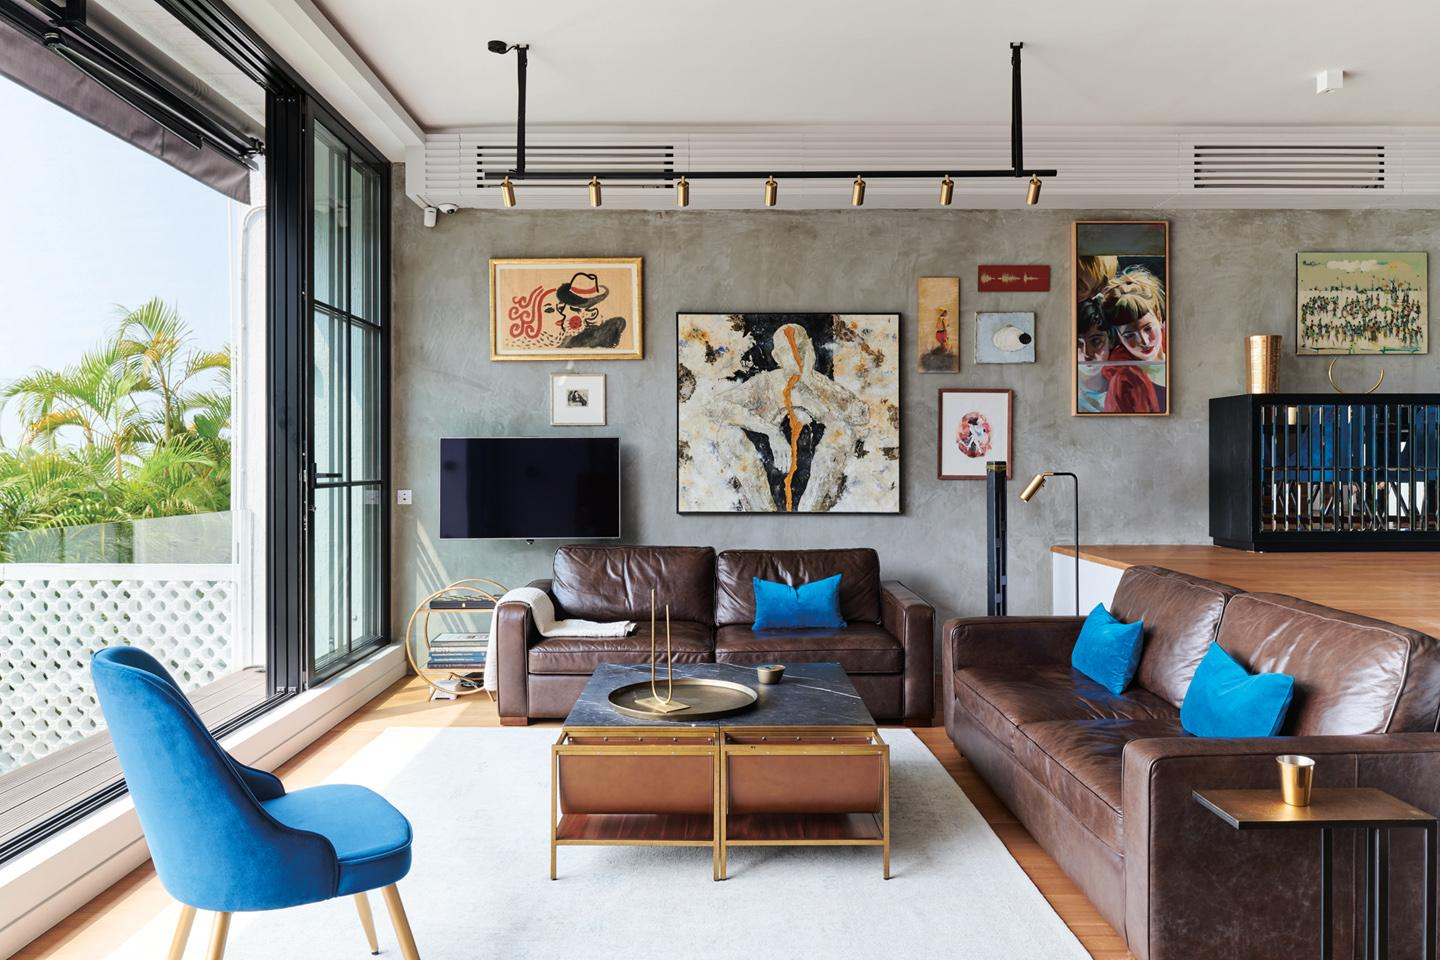 The sofa is from Indigo Living; cushions are from Blanc des Voges